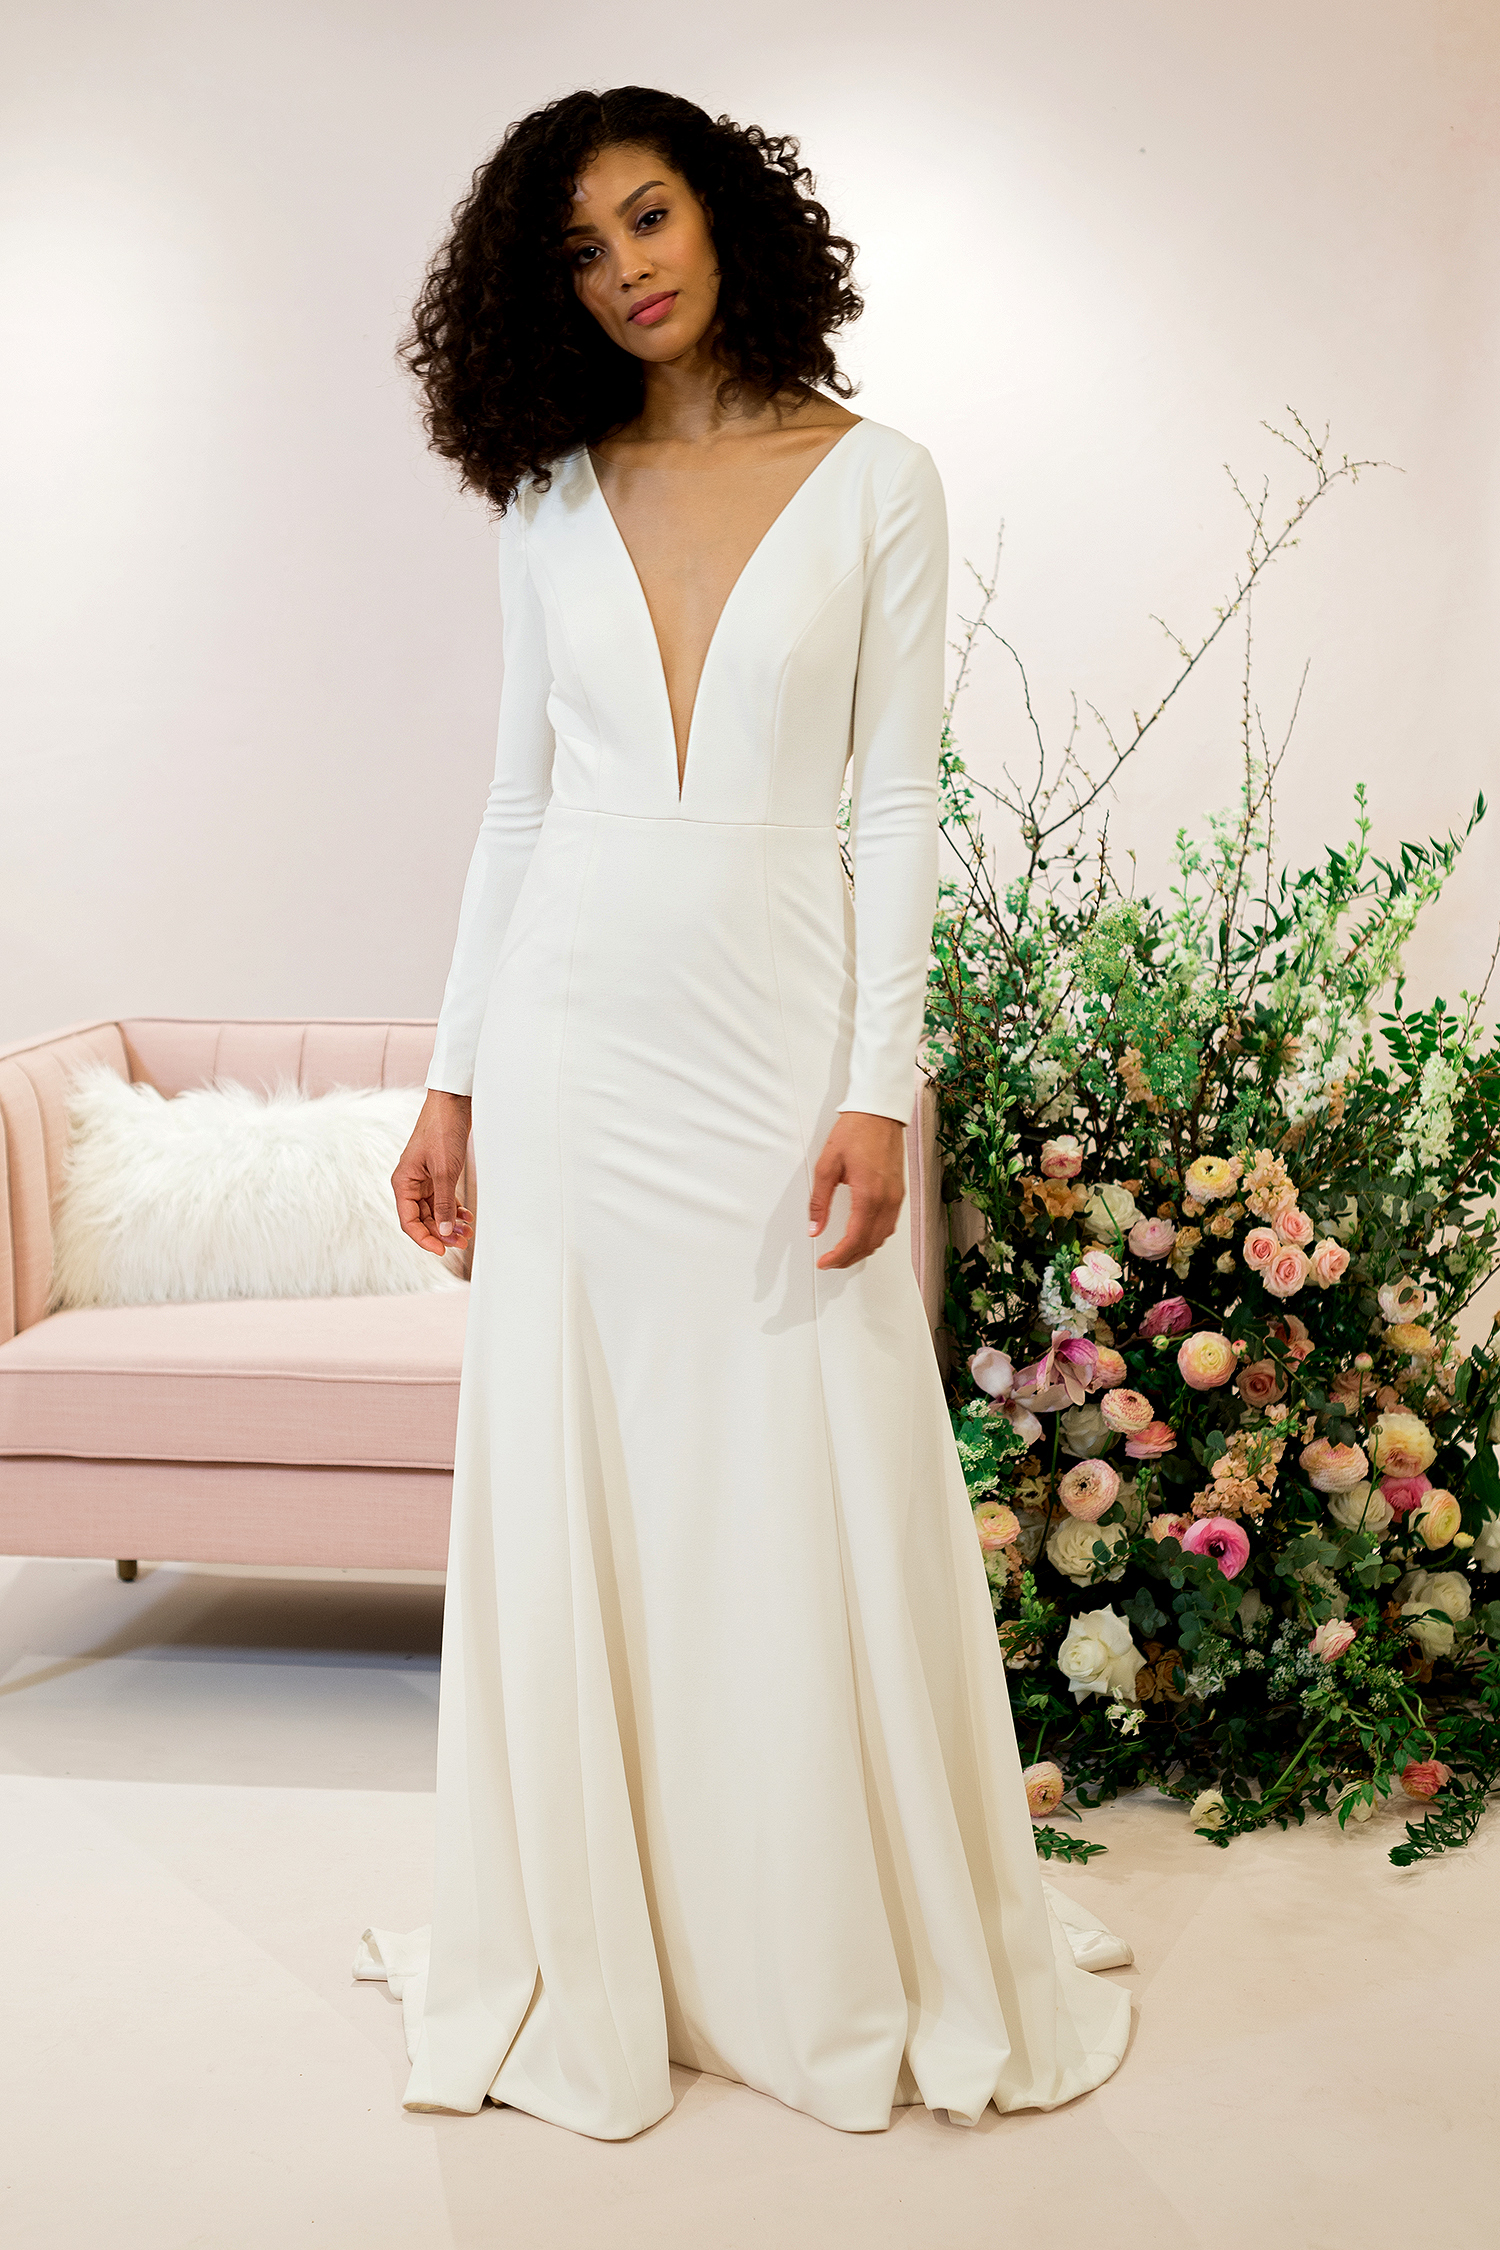 jenny by jenny yoo dress spring 2019 long-sleeved minimalist sheath